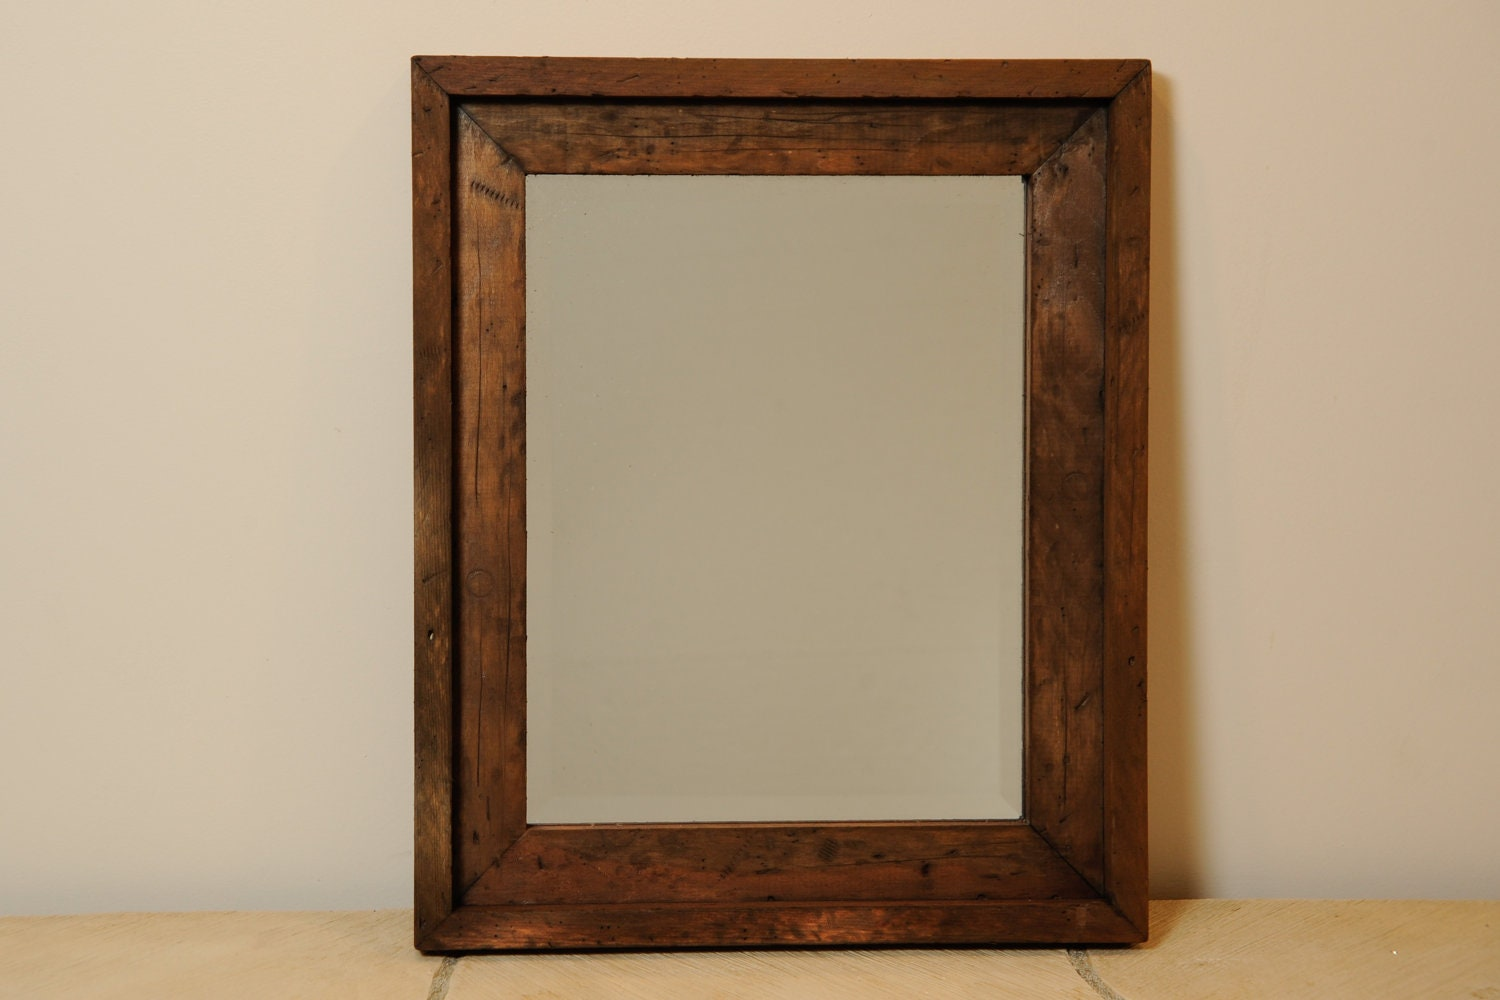 Amazoncom barnwood mirror Home amp Kitchen